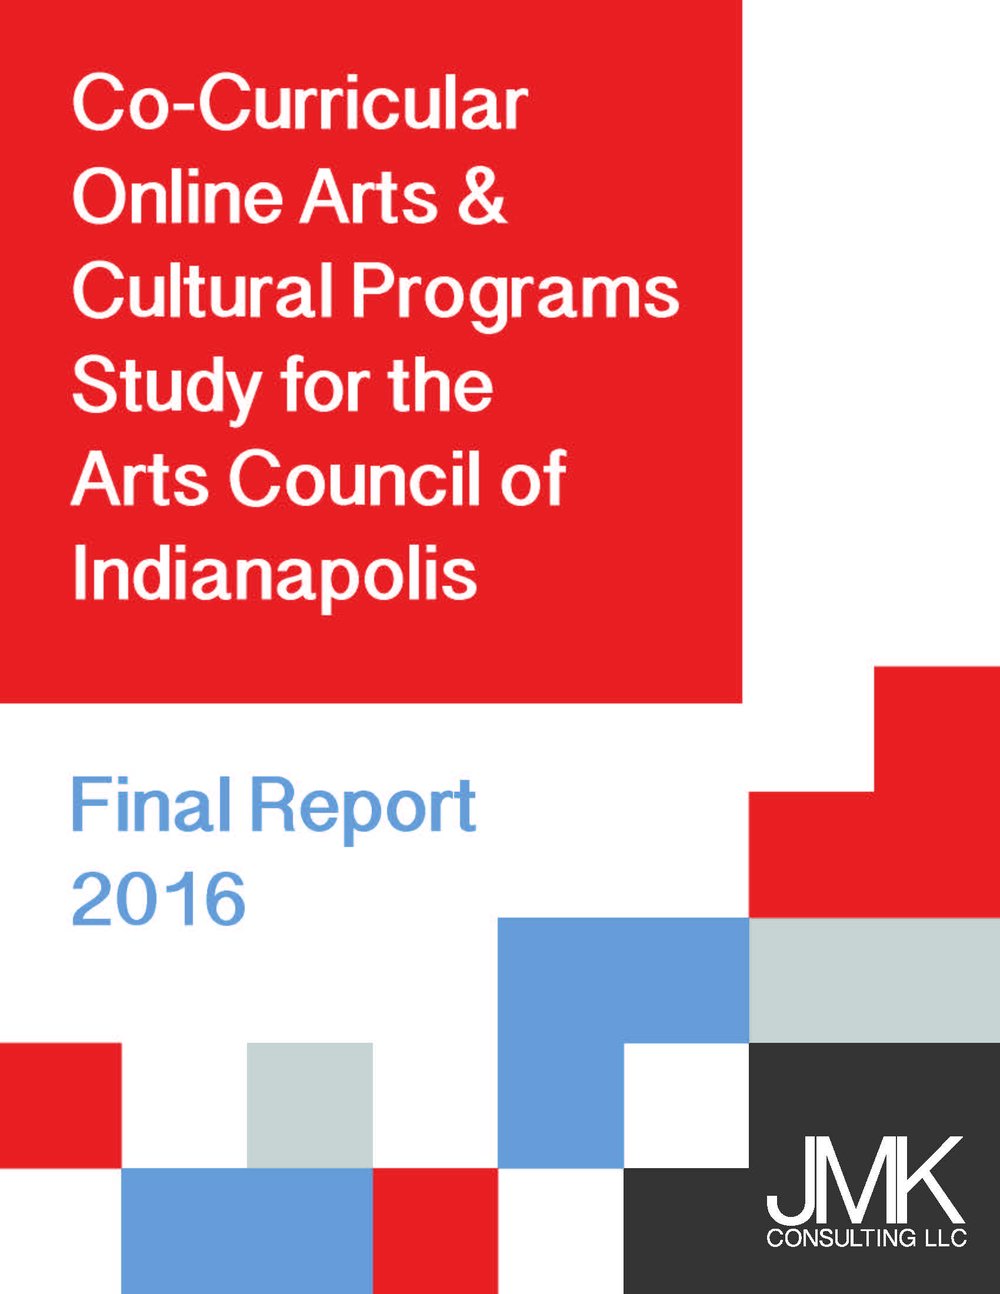 JMK Consulting Report Cover for Co-Curricular Online Arts and Cultural Studies Program